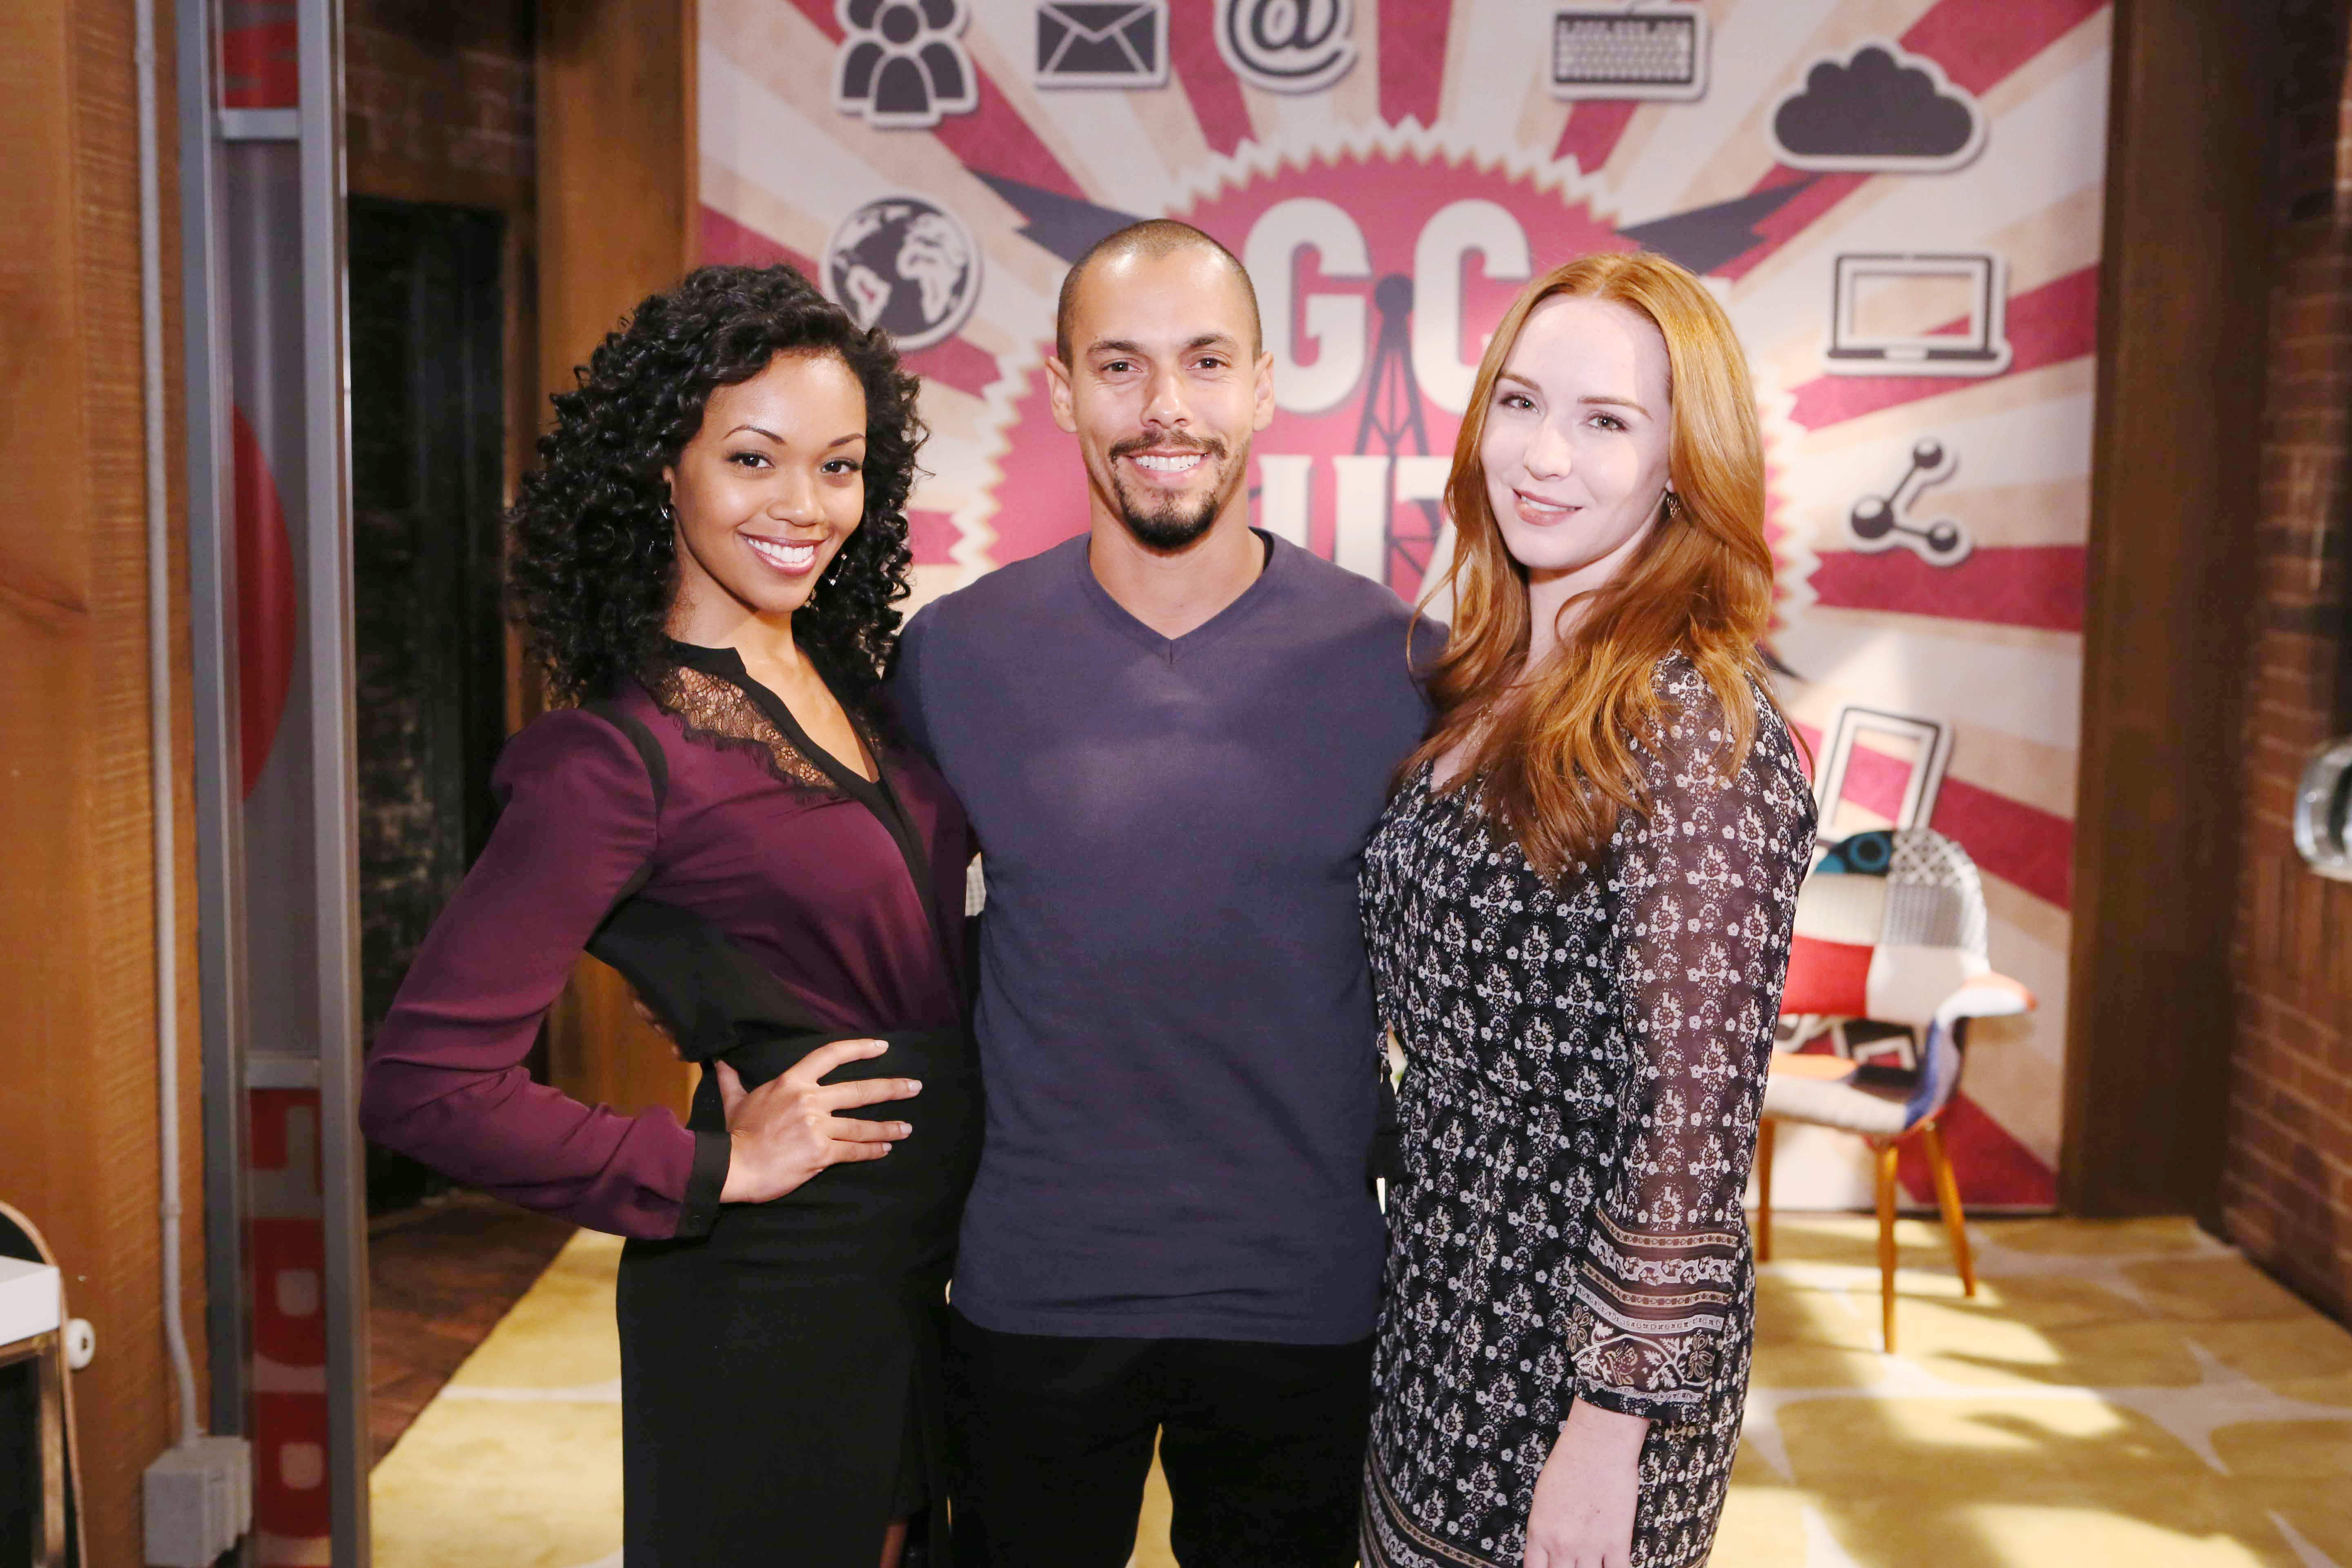 "Bryton James, Camryn Grimes, Mishael Morgan ""The Young and the Restless"" Set  CBS television City Los Angeles 10/13/16 © Howard Wise/jpistudios.com 310-657-9661"